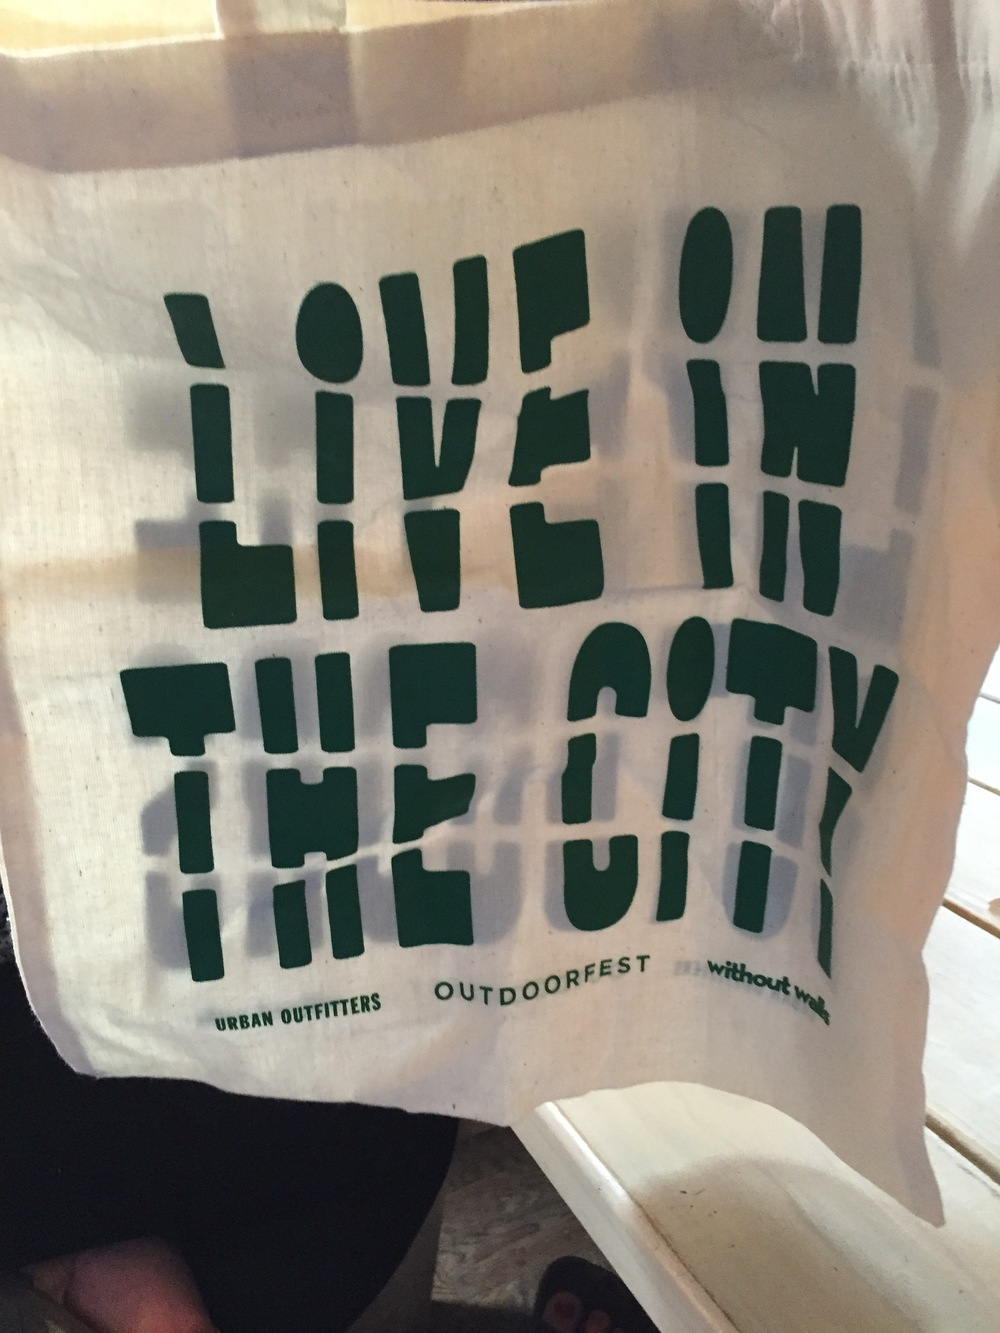 Co-branded tote bags with Urban Outfitters for beach day in Rockaway